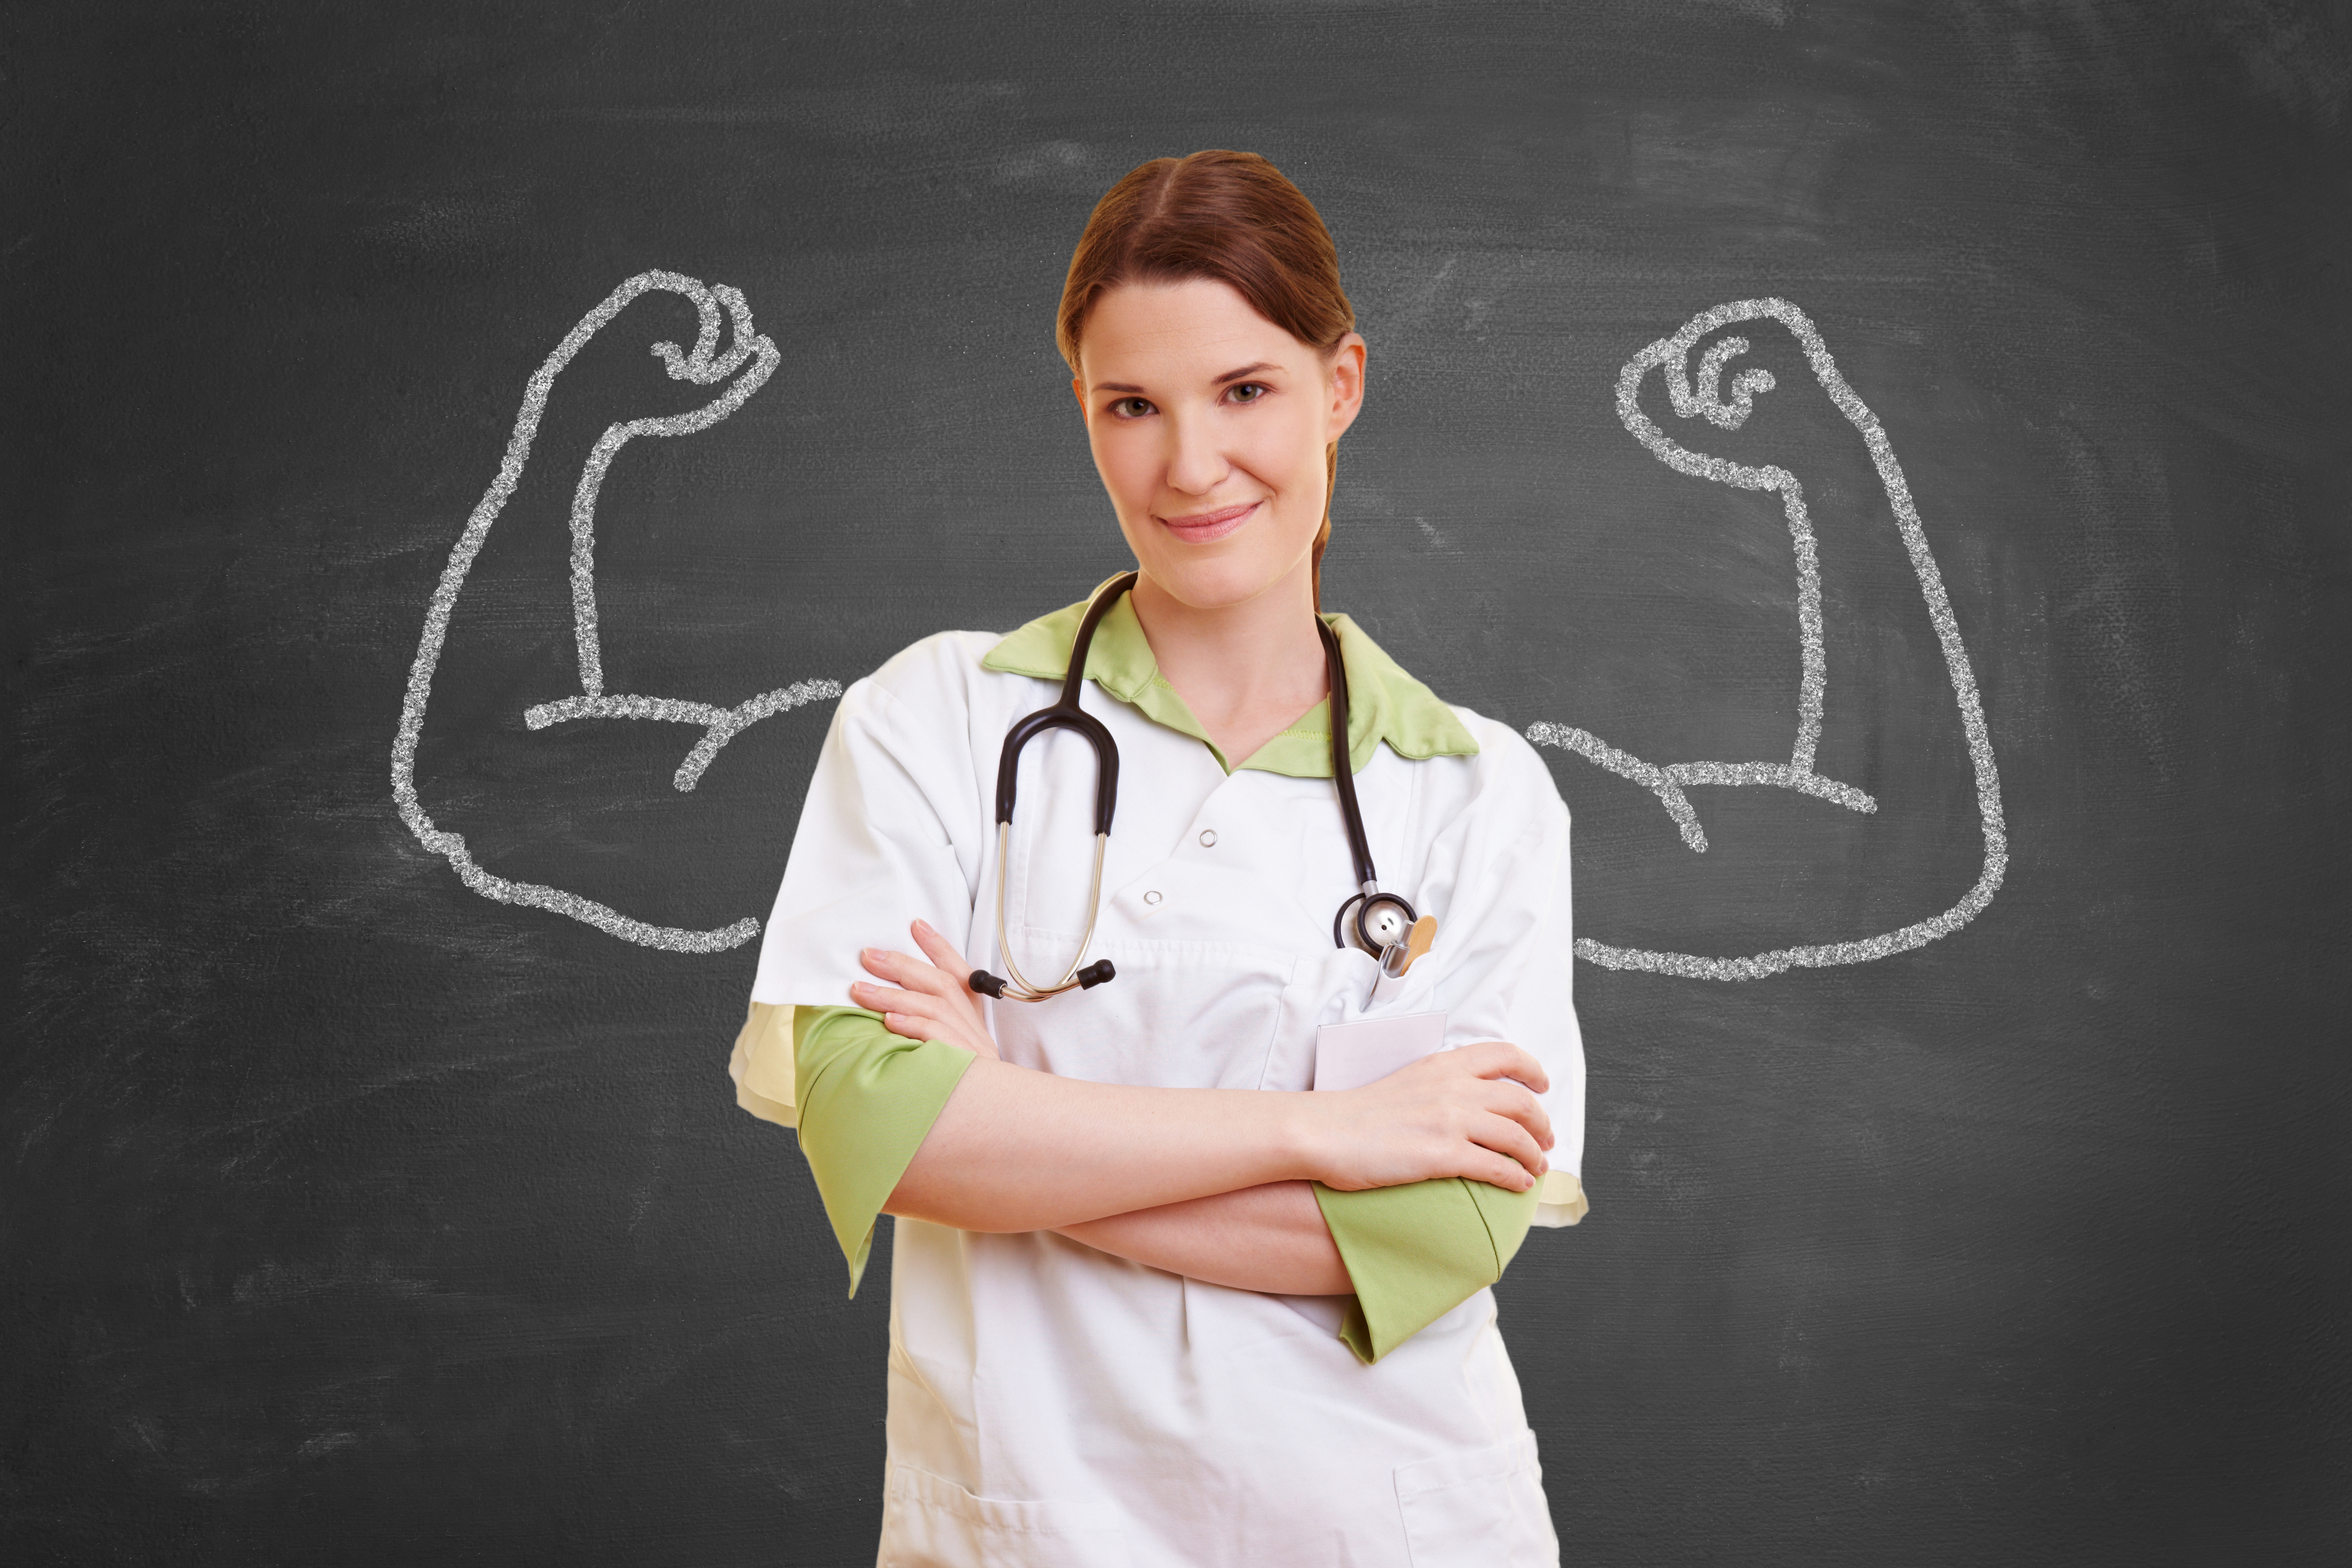 doctor with flexing muscles background